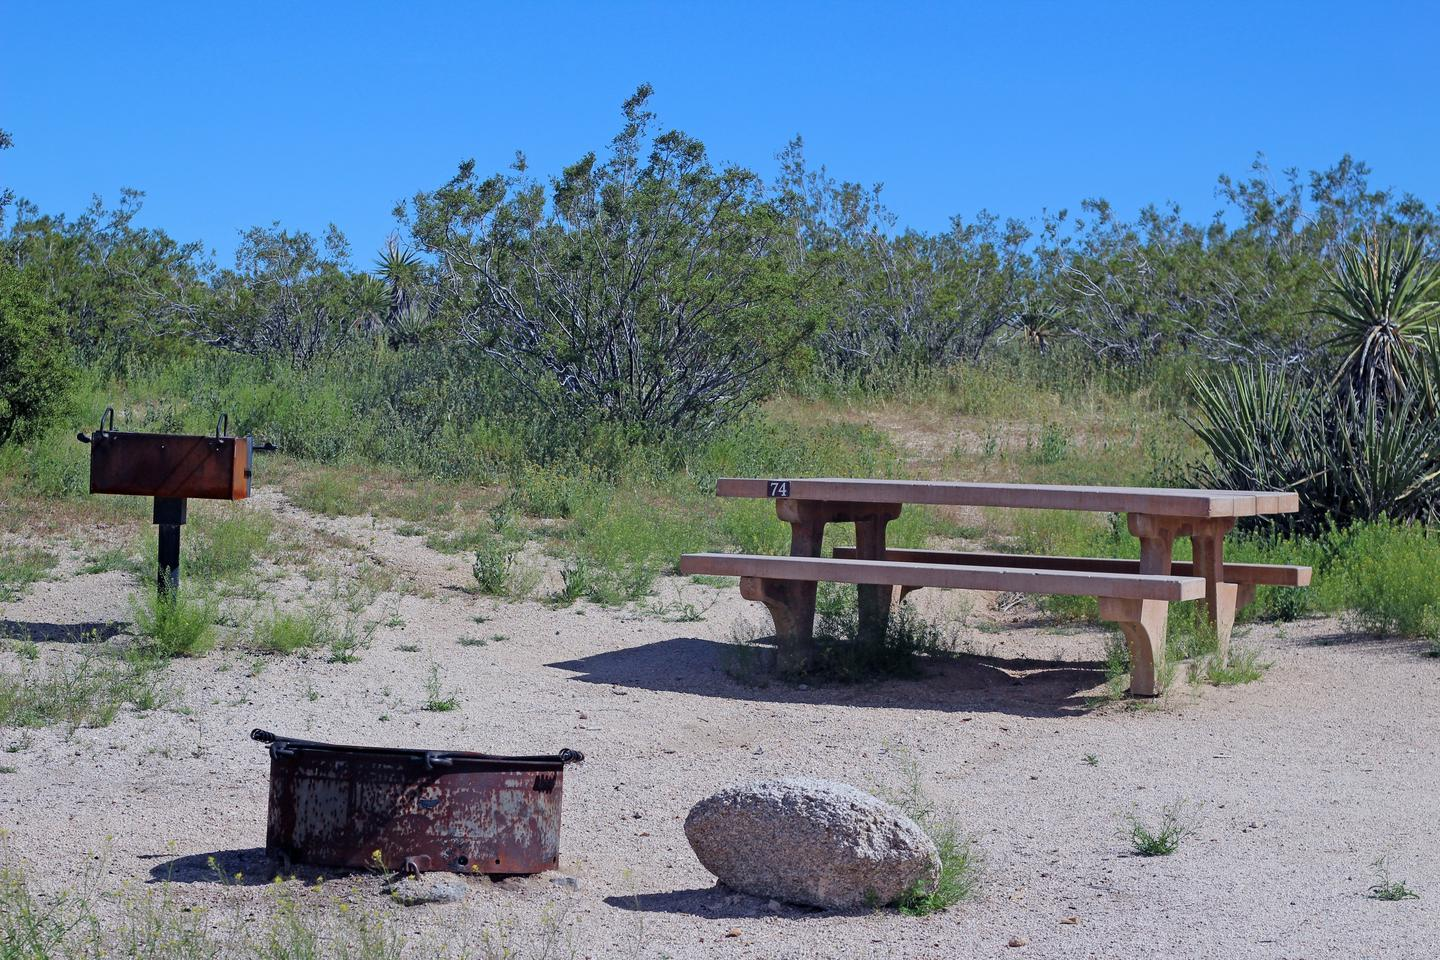 Campsite  with picnic table surrounded by flat sandy area and green plants.Campsite.